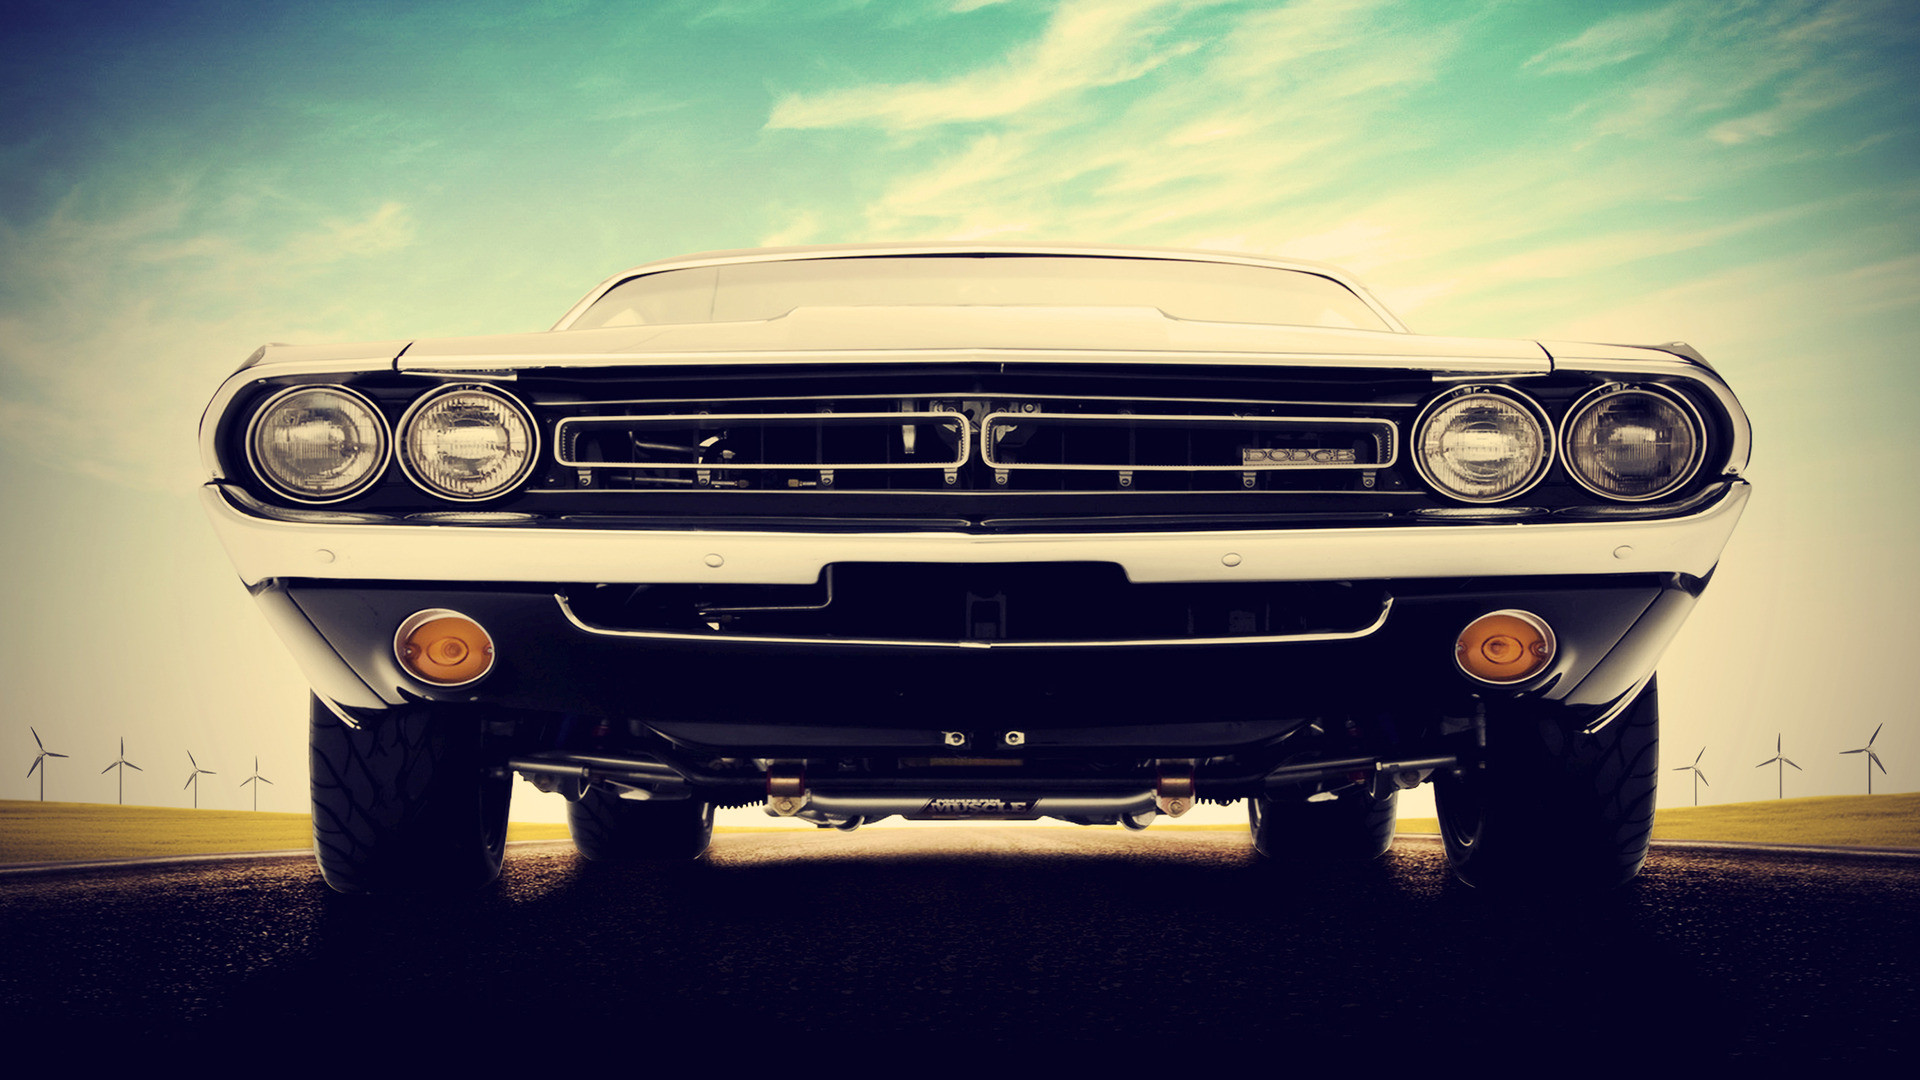 1920x1080 1970 Dodge Charger HD Background Wallpaper is hd wallpaper for desktop  background iphone, computer,